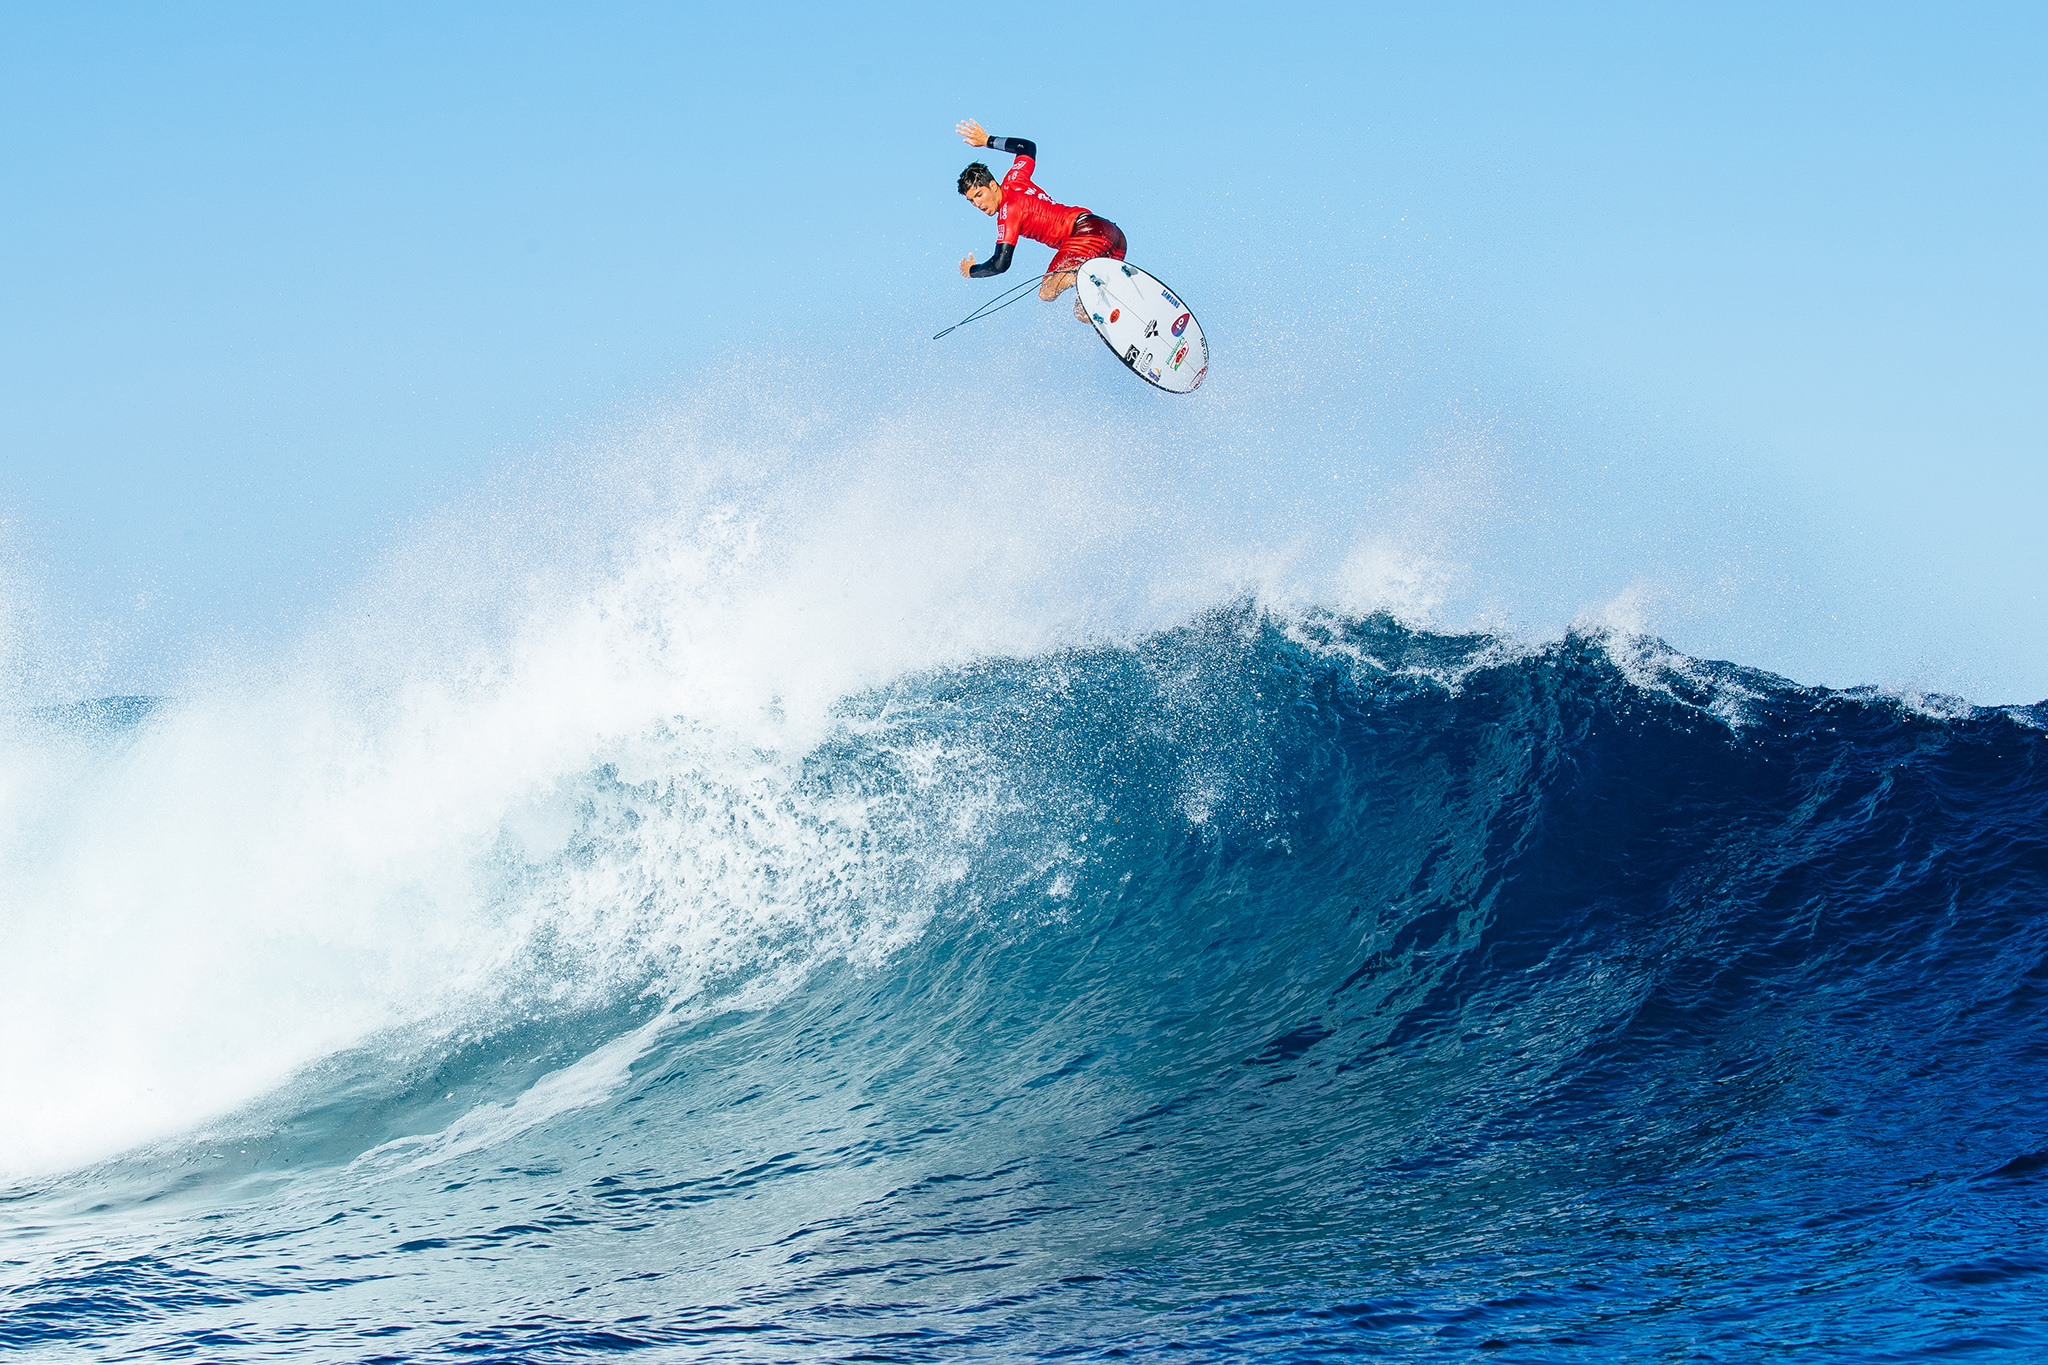 Gabriel Medina of BRasil (pictured) winning his in Round Three of the Fiji Pro at Cloudbreak, Tavarua on Wednesday June 15, 2016. PHOTO: ©WSL/ Sloane SOCIAL: @edsloanephoto @wsl This image is the copyright of the World Surf League and is provided royalty free for editorial use only, in all media now known or hereafter created. No commercial rights granted. Sale or license of the images is prohibited. This image is a factually accurate rendering of what it depicts and has not been modified or augmented except for standard cropping and toning. ALL RIGHTS RESERVED.